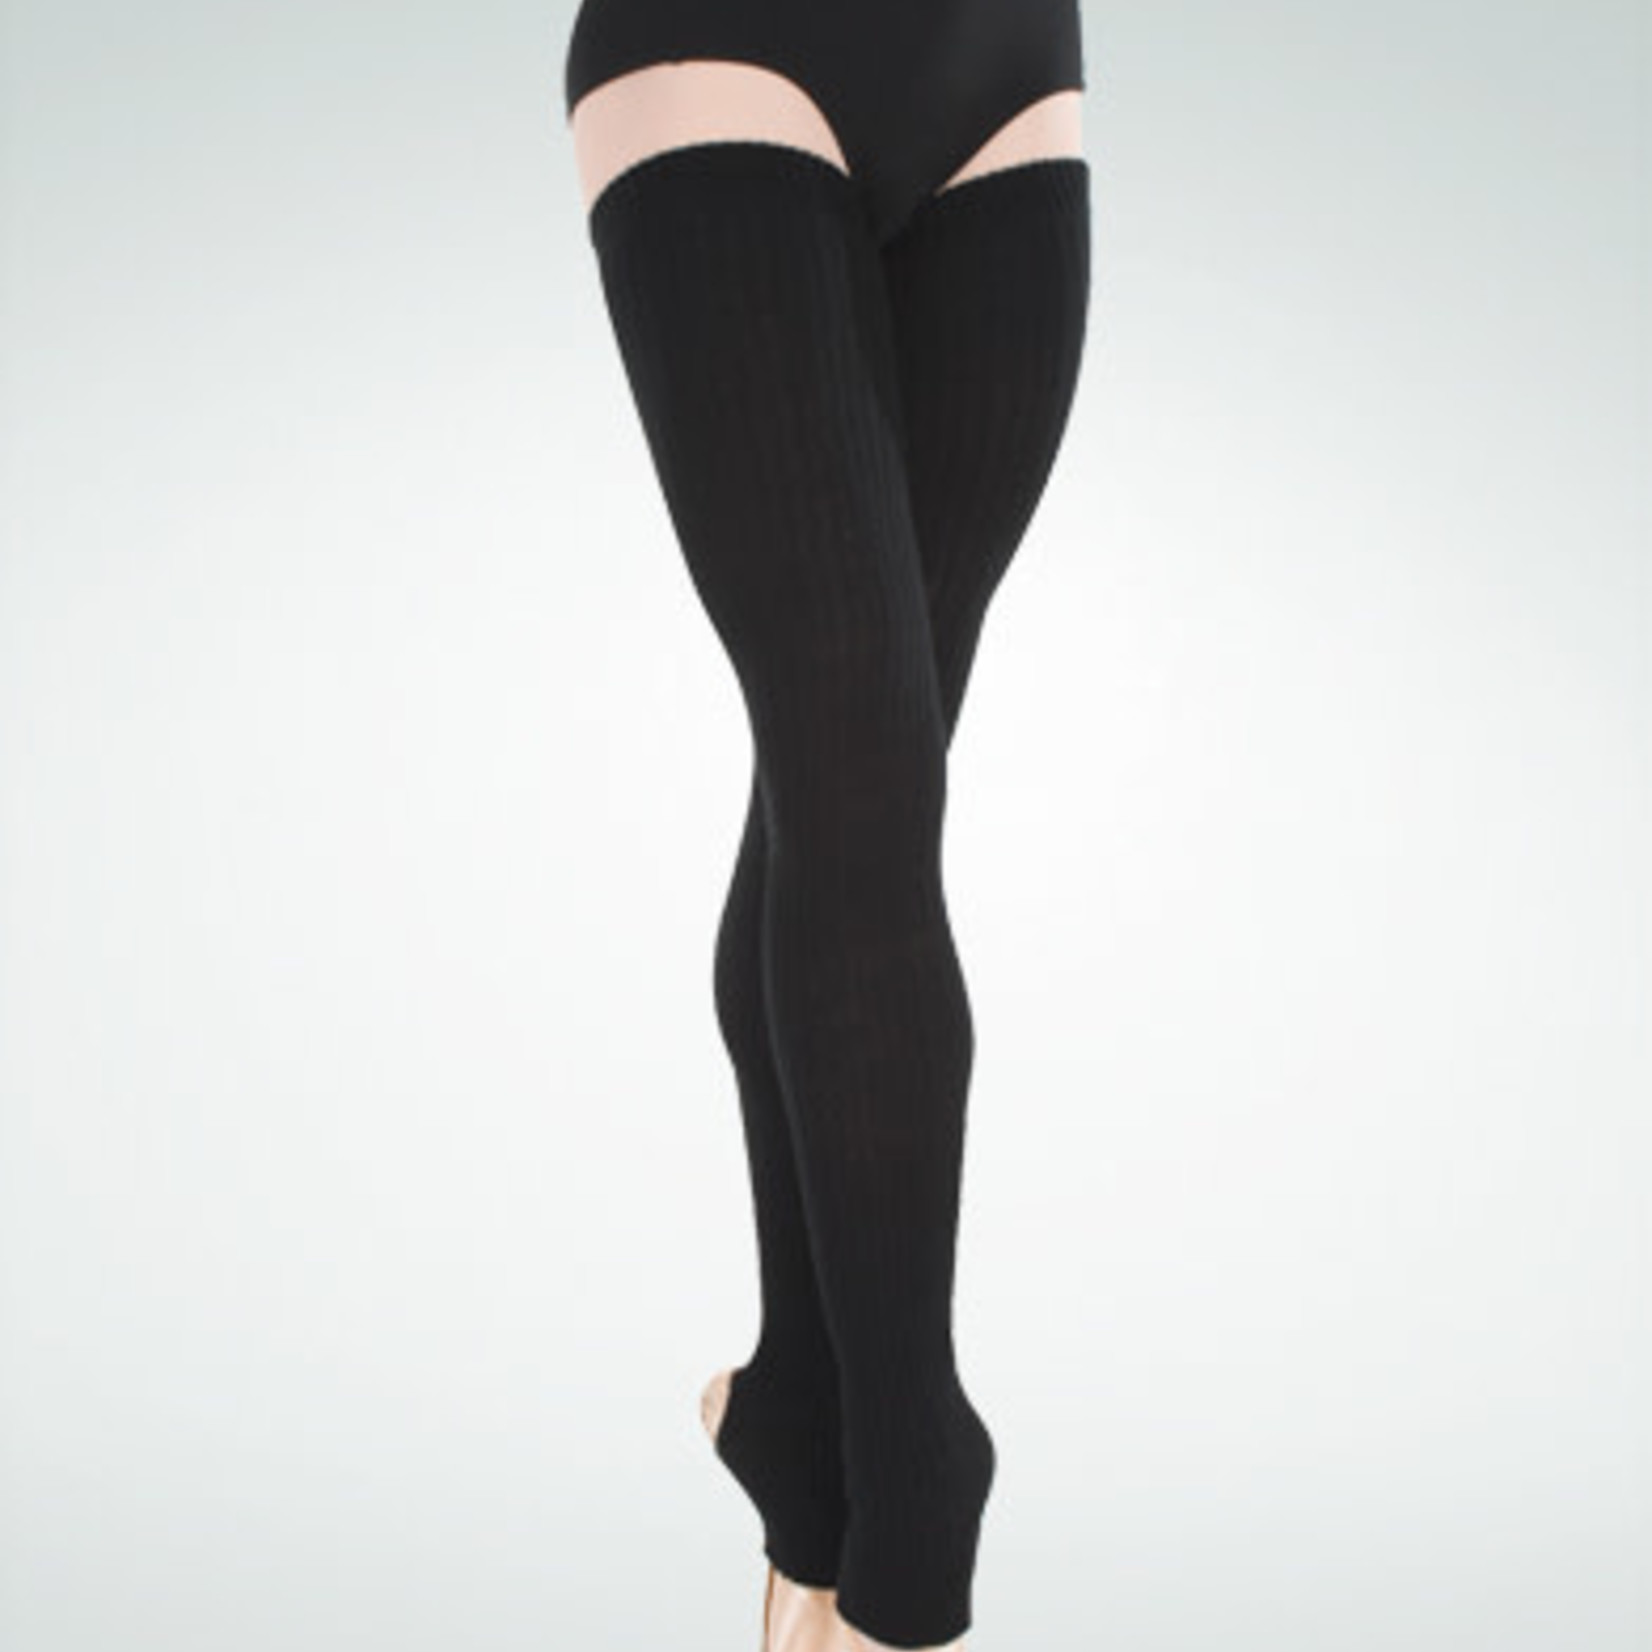 """Body Wrappers Body Wrappers 92 Stirrup 48"""" Leg / Thigh Warmers"""